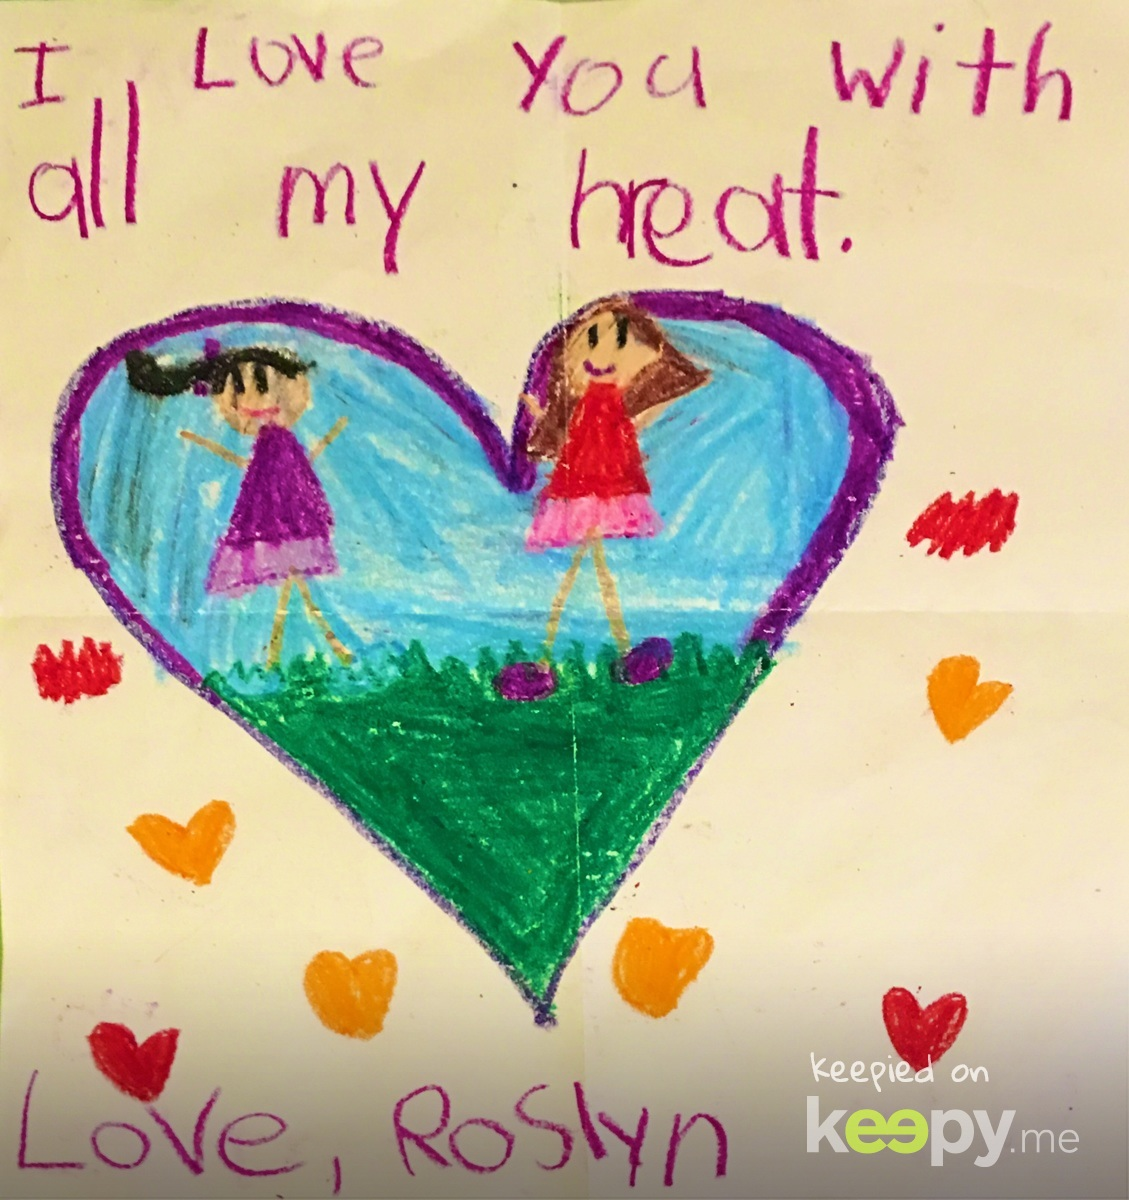 """I love you with all my h(r)eat"". Too cute. #RoslynJ #2018 » Keepy.me"